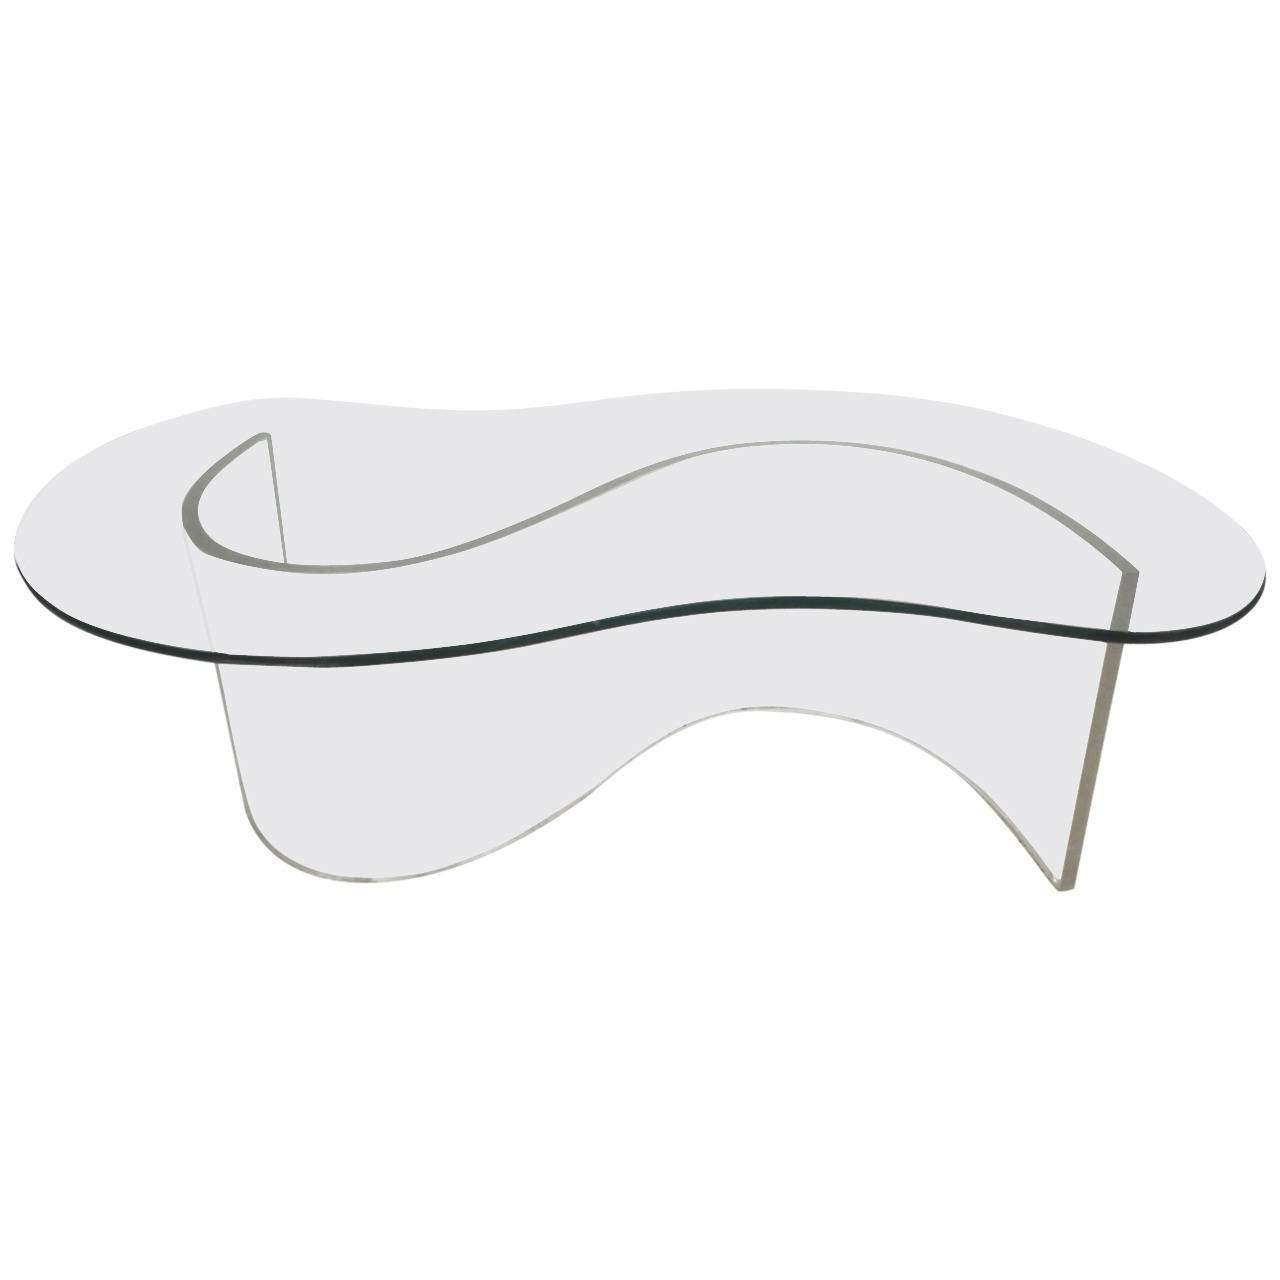 Modern Lucite And Glass Free Edge Coffee Table For Sale At 1stdibs In Trendy Perspex Coffee Table (View 14 of 20)